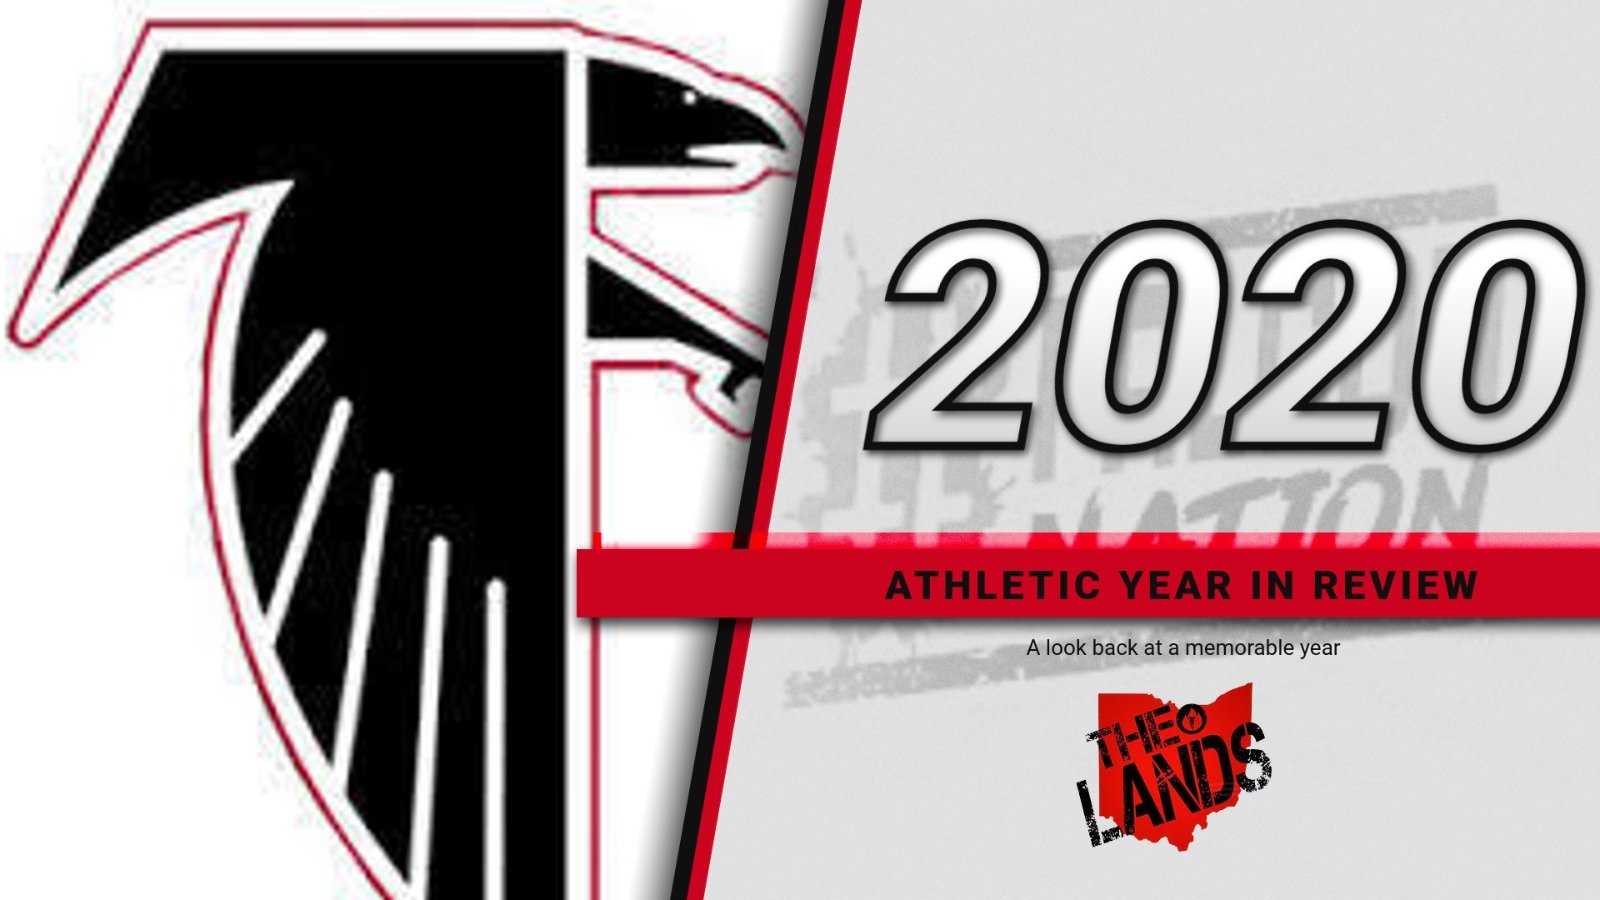 A look back at 2020 in Falcon Athletics